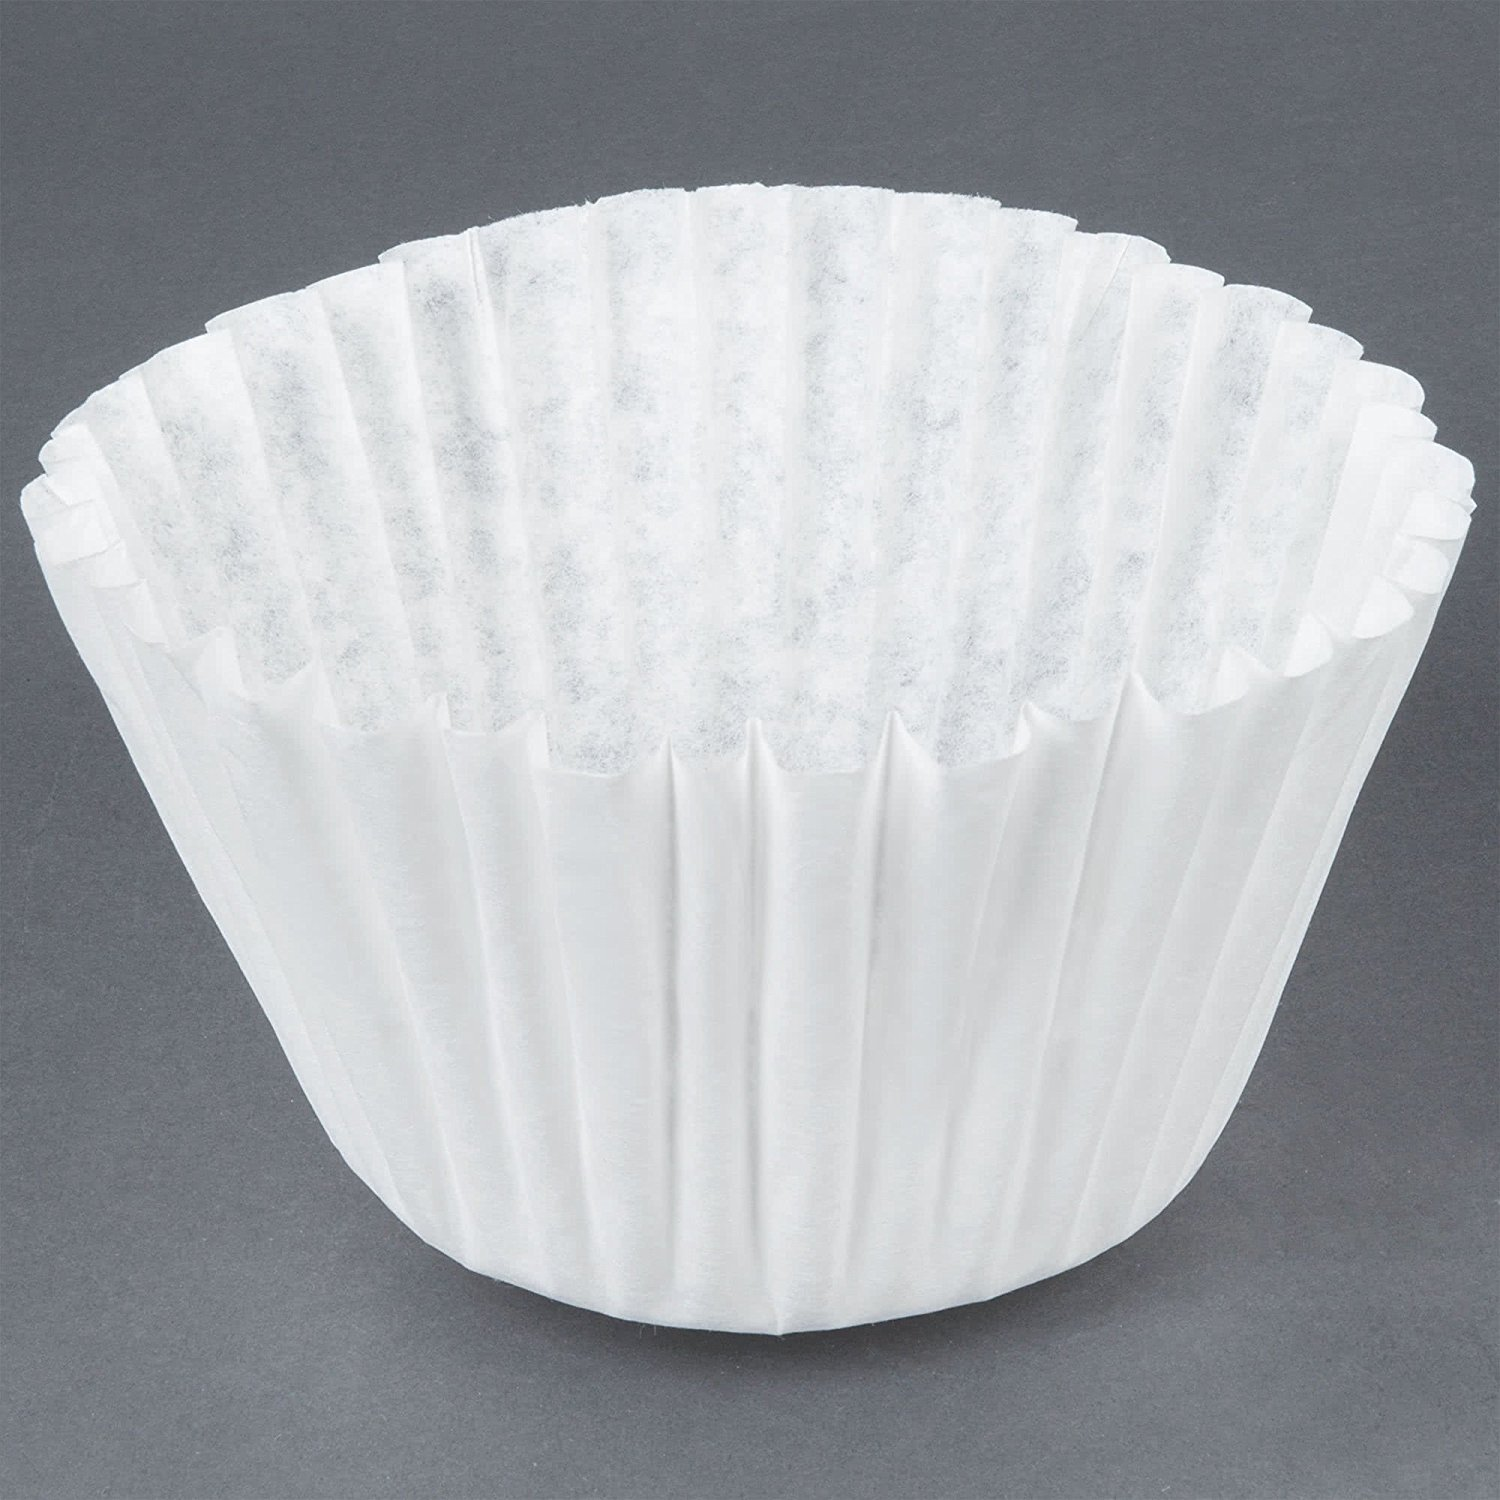 "TableTop King 20138.1000 13 3/4"" x 5 1/4"" 1.5 Gallon Coffee Filter - 500/Case"